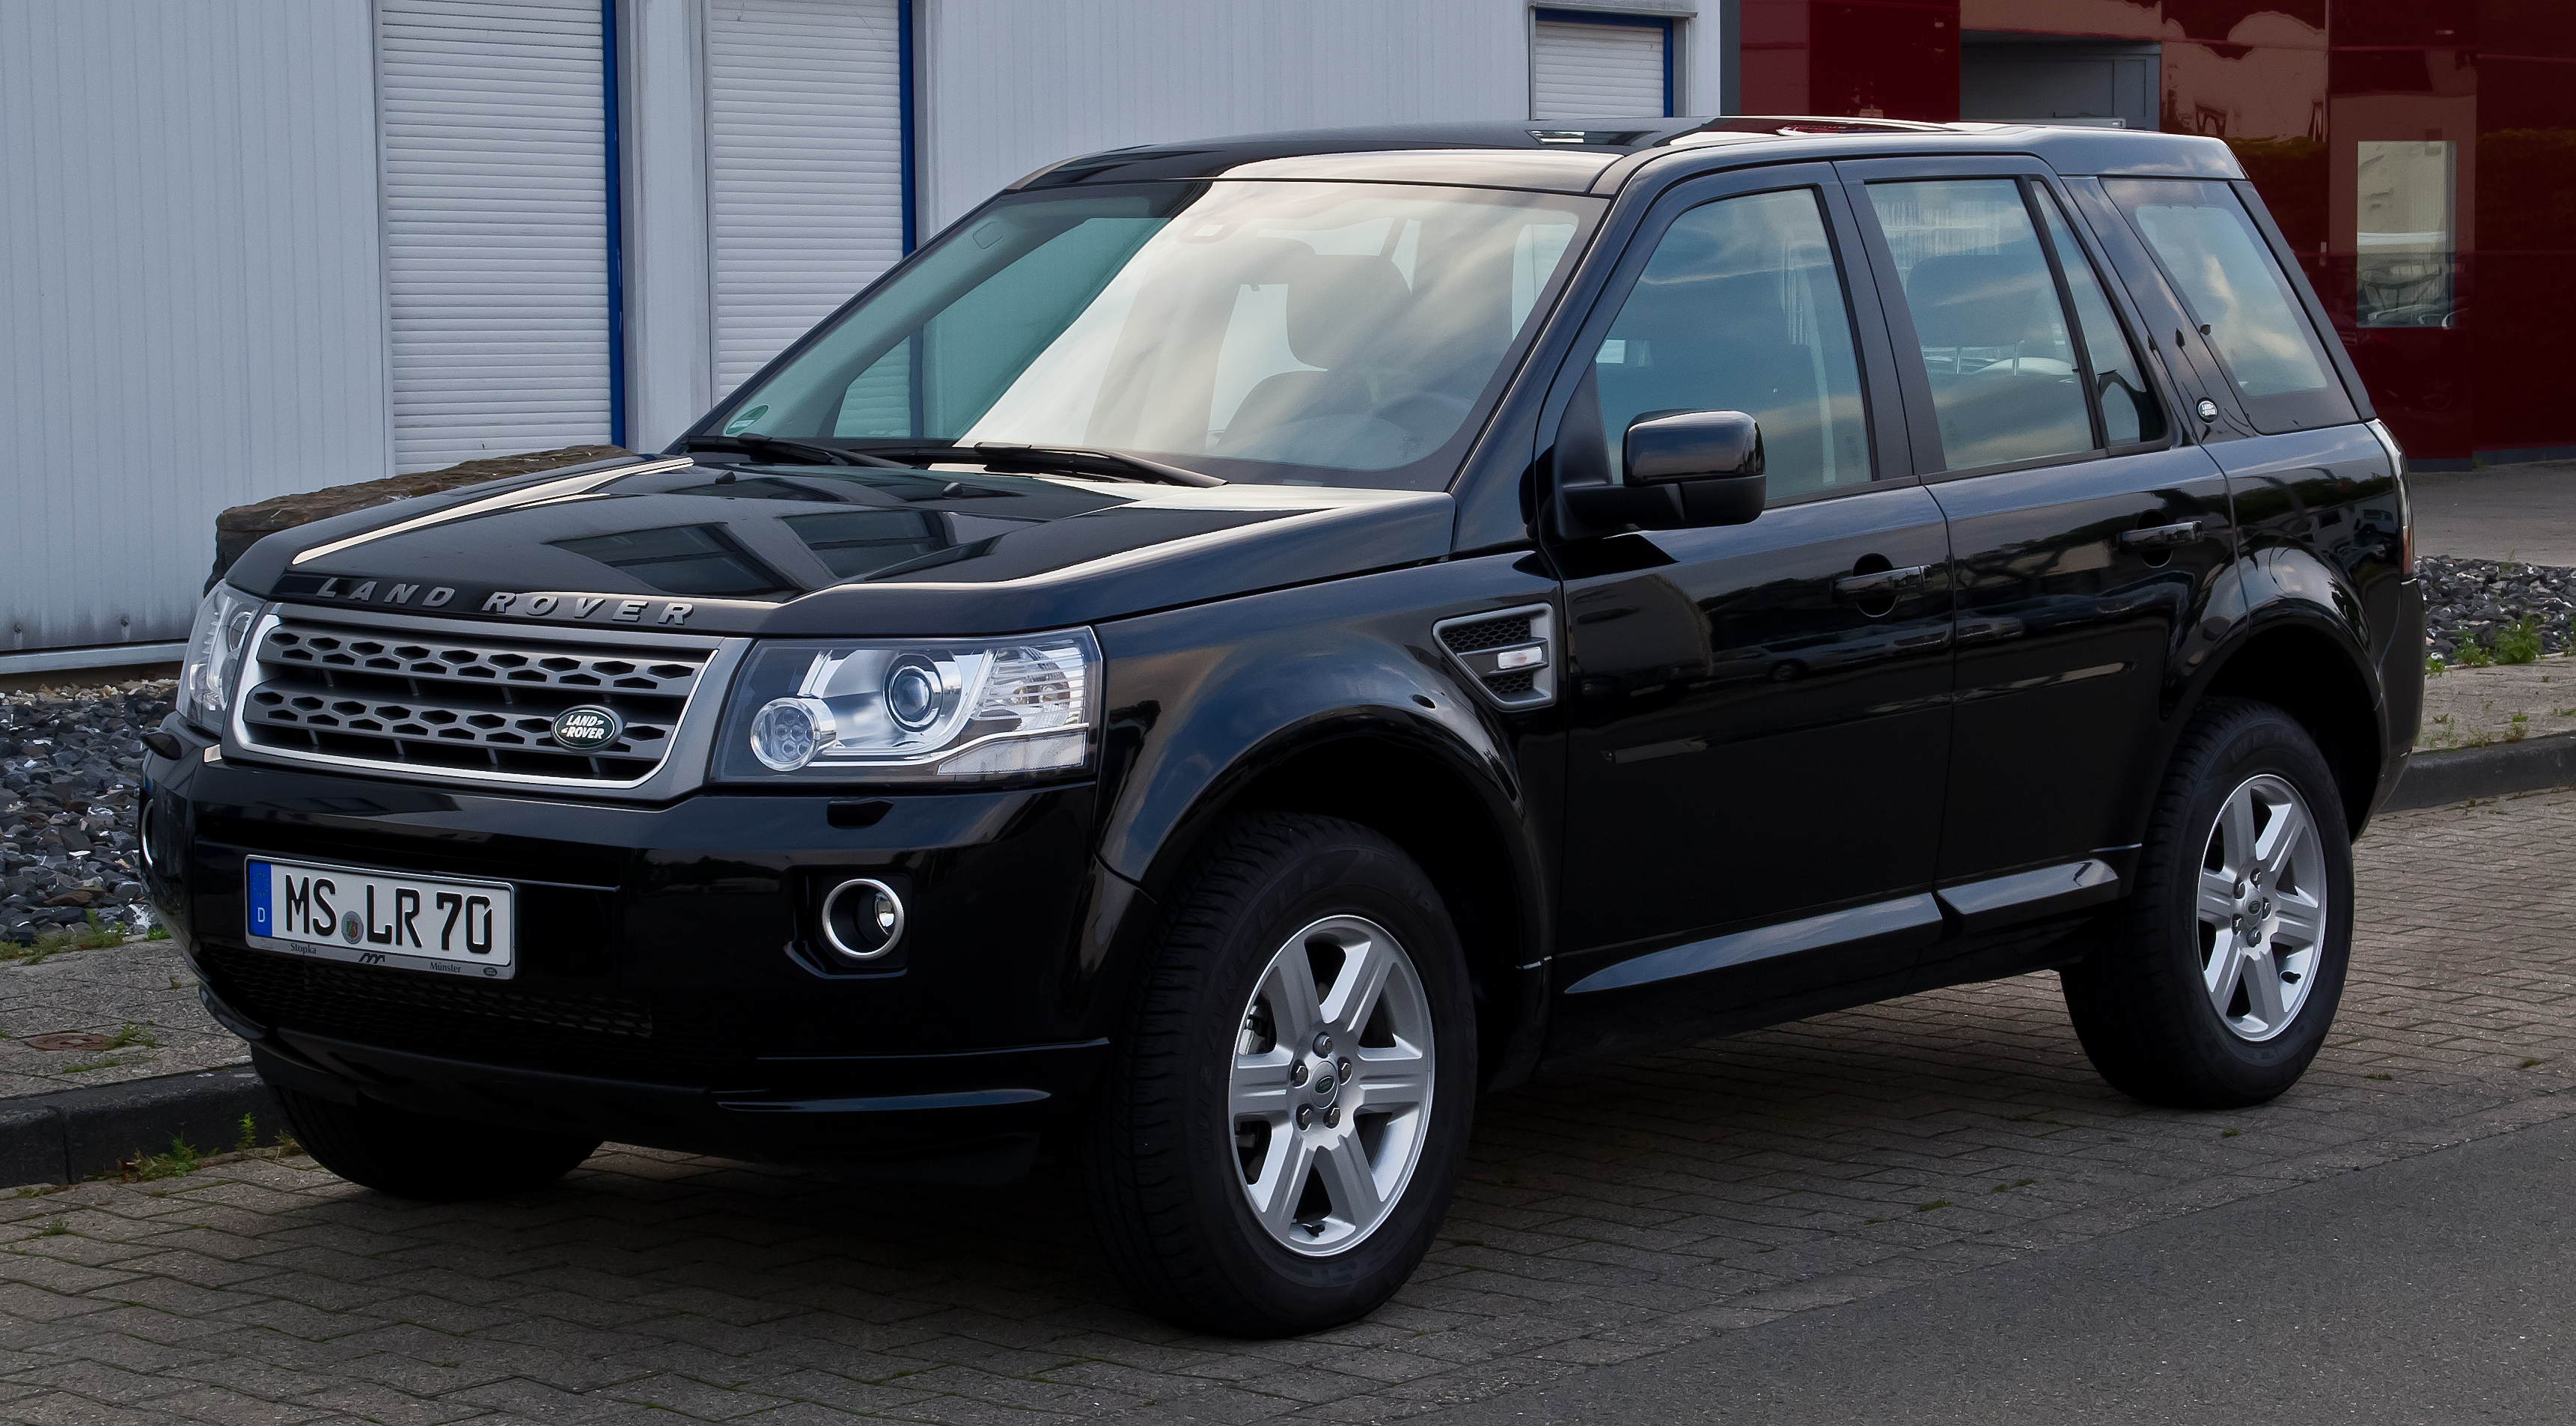 file land rover freelander td4 s ii 2 facelift. Black Bedroom Furniture Sets. Home Design Ideas